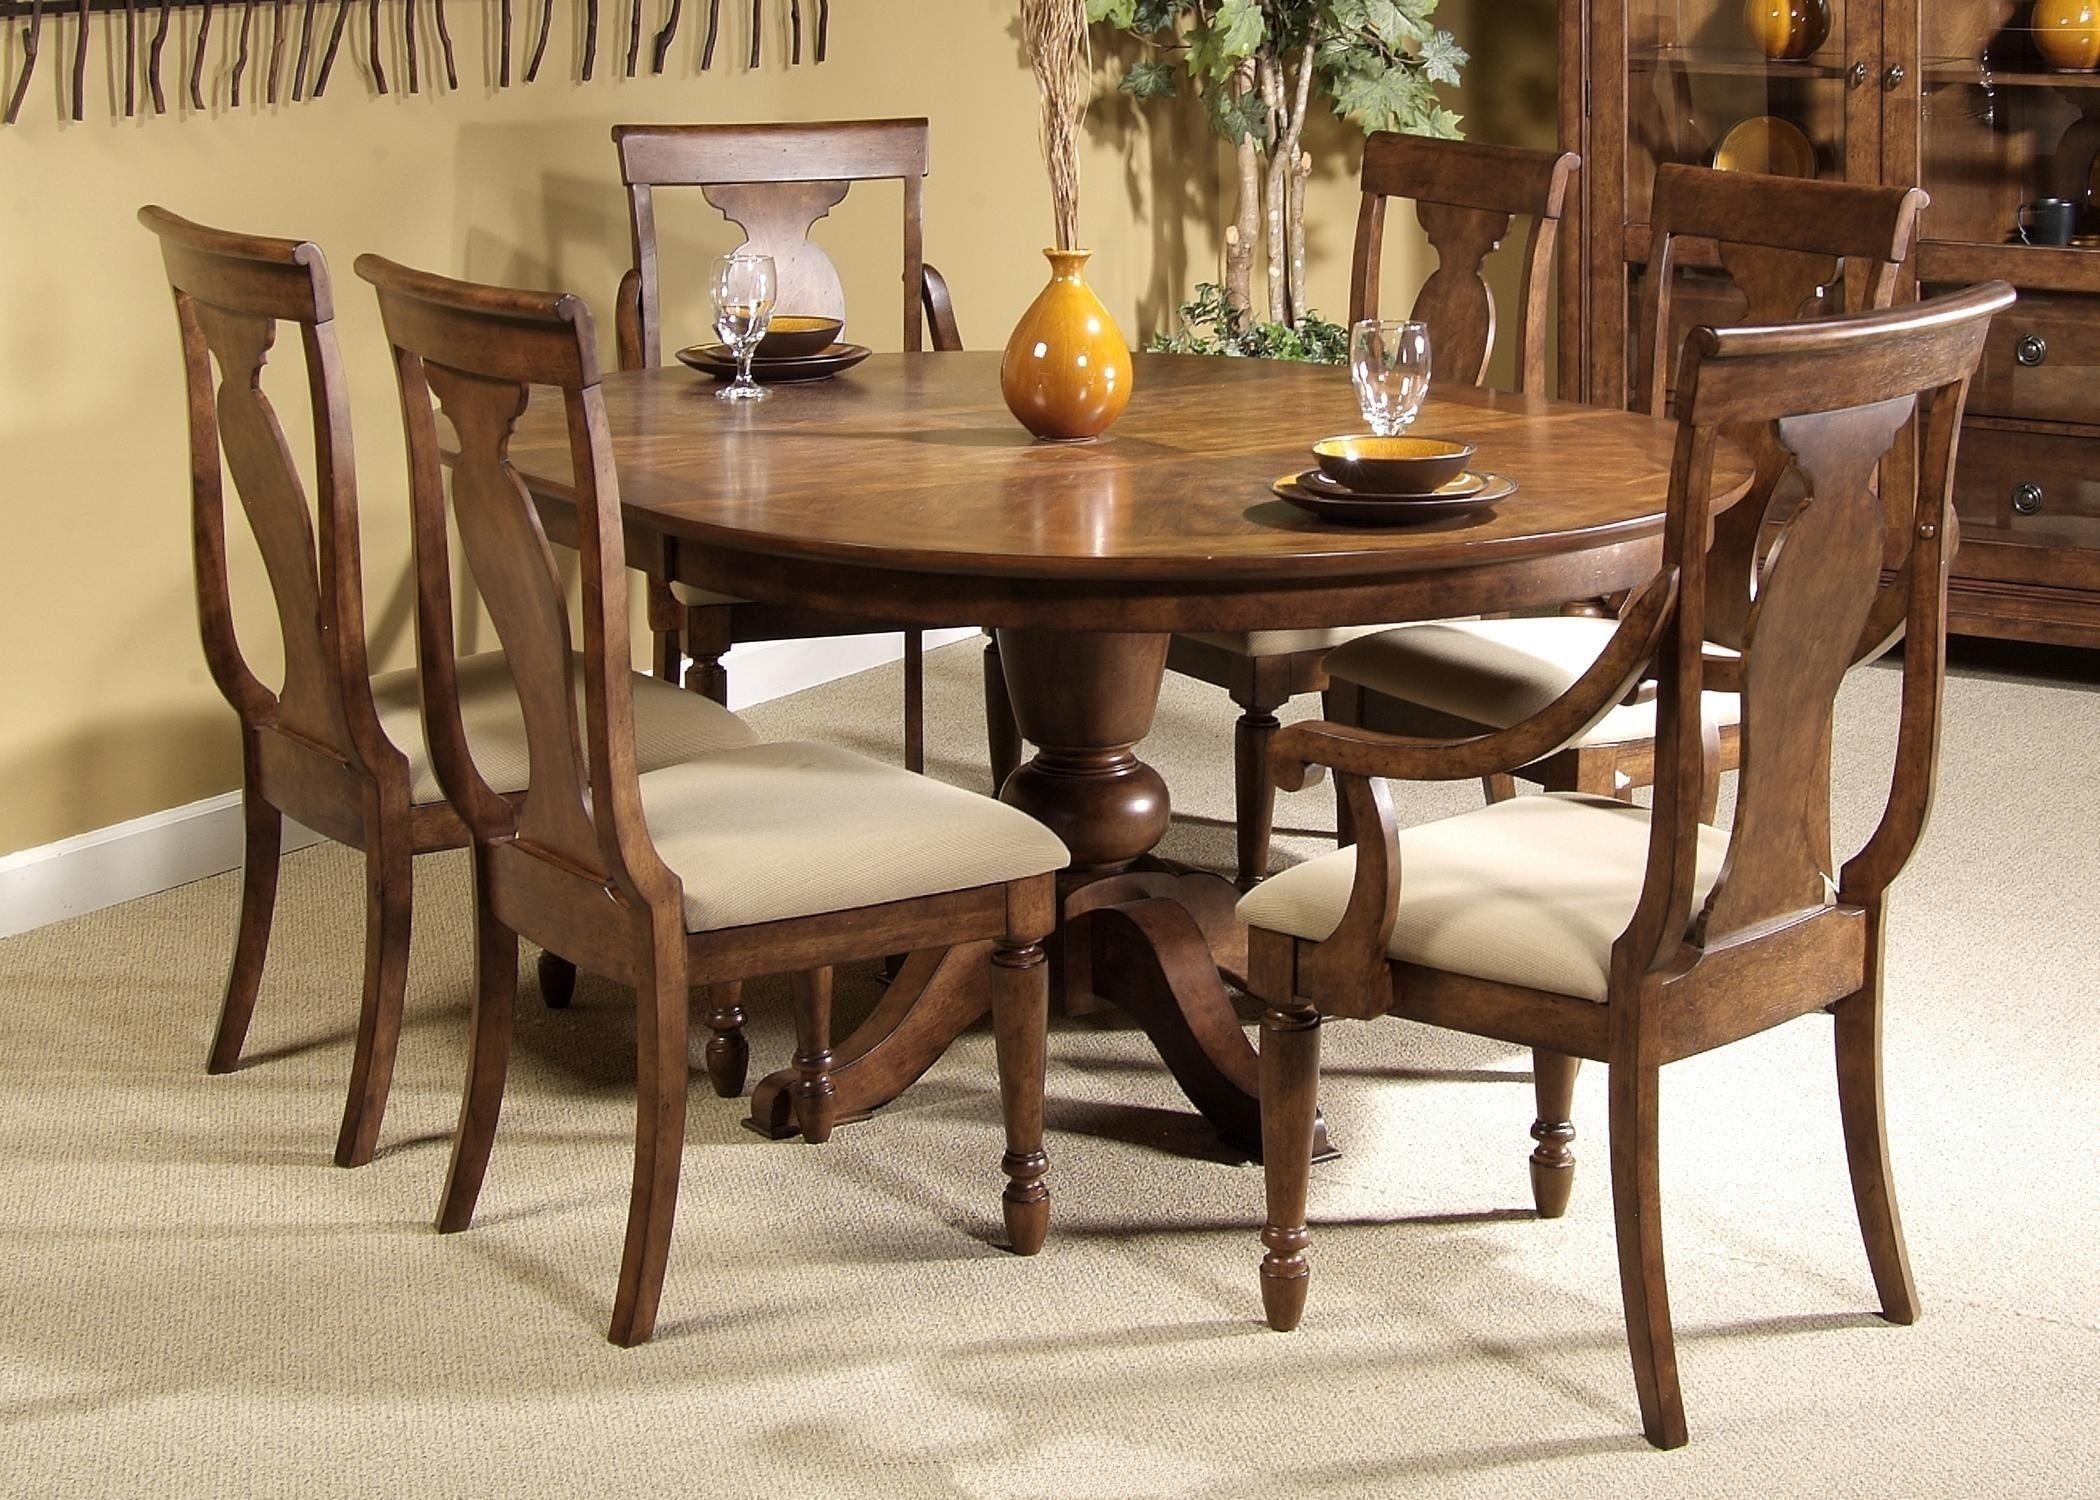 Round dining table for 6 Dining Room Luxury Round Dining Table For 68 Light Of Dining Visual Hunt Round Dining Table For Visual Hunt